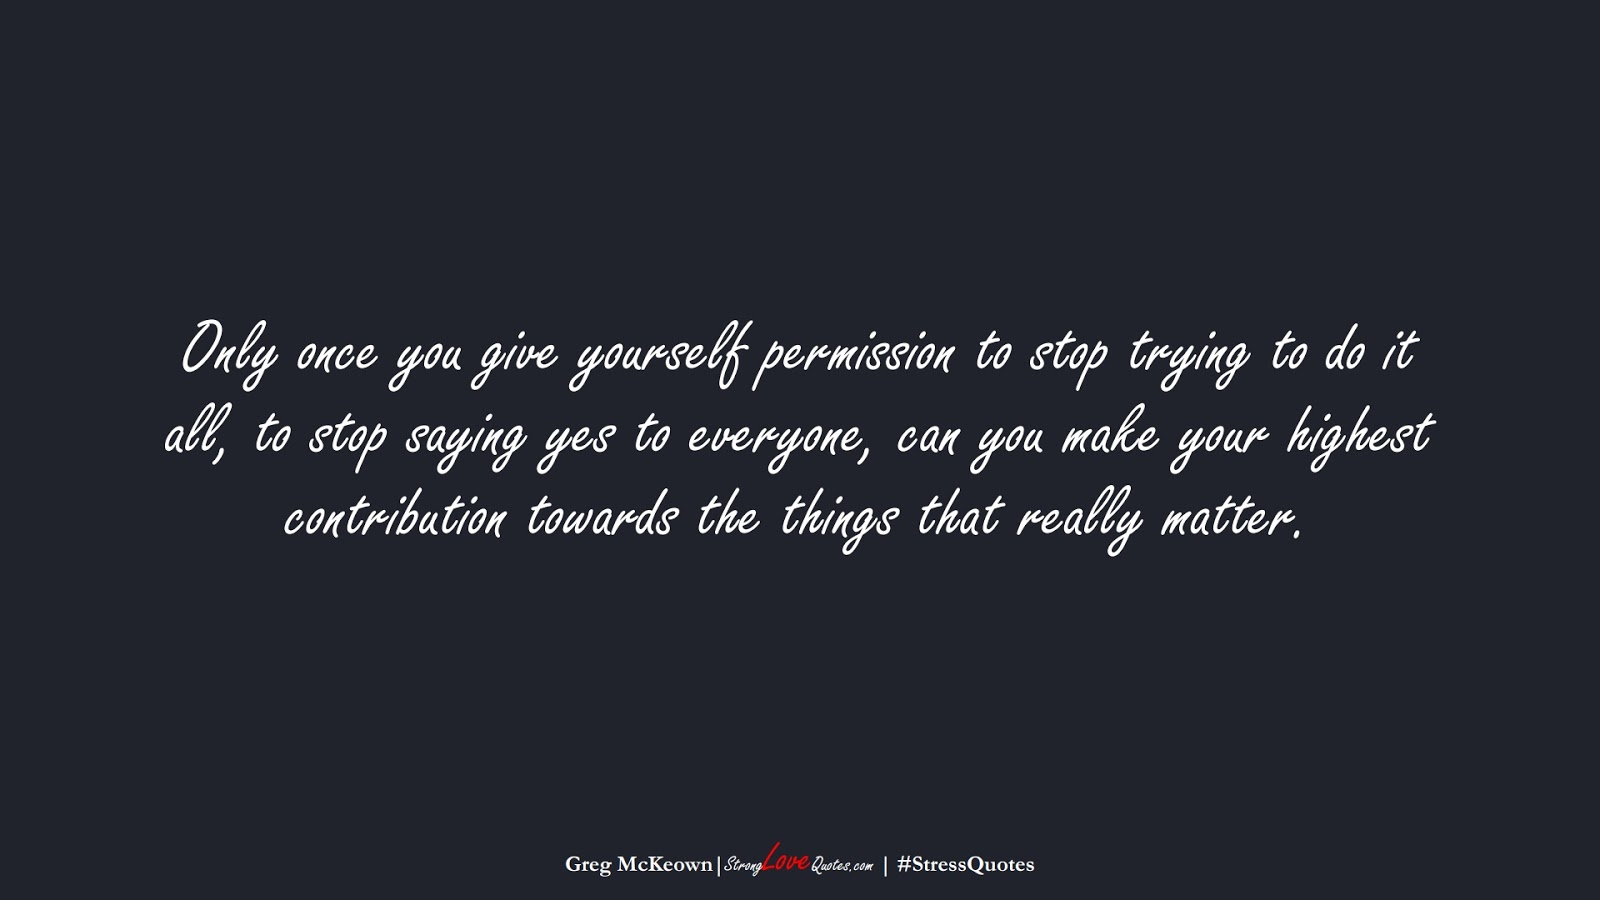 Only once you give yourself permission to stop trying to do it all, to stop saying yes to everyone, can you make your highest contribution towards the things that really matter. (Greg McKeown);  #StressQuotes